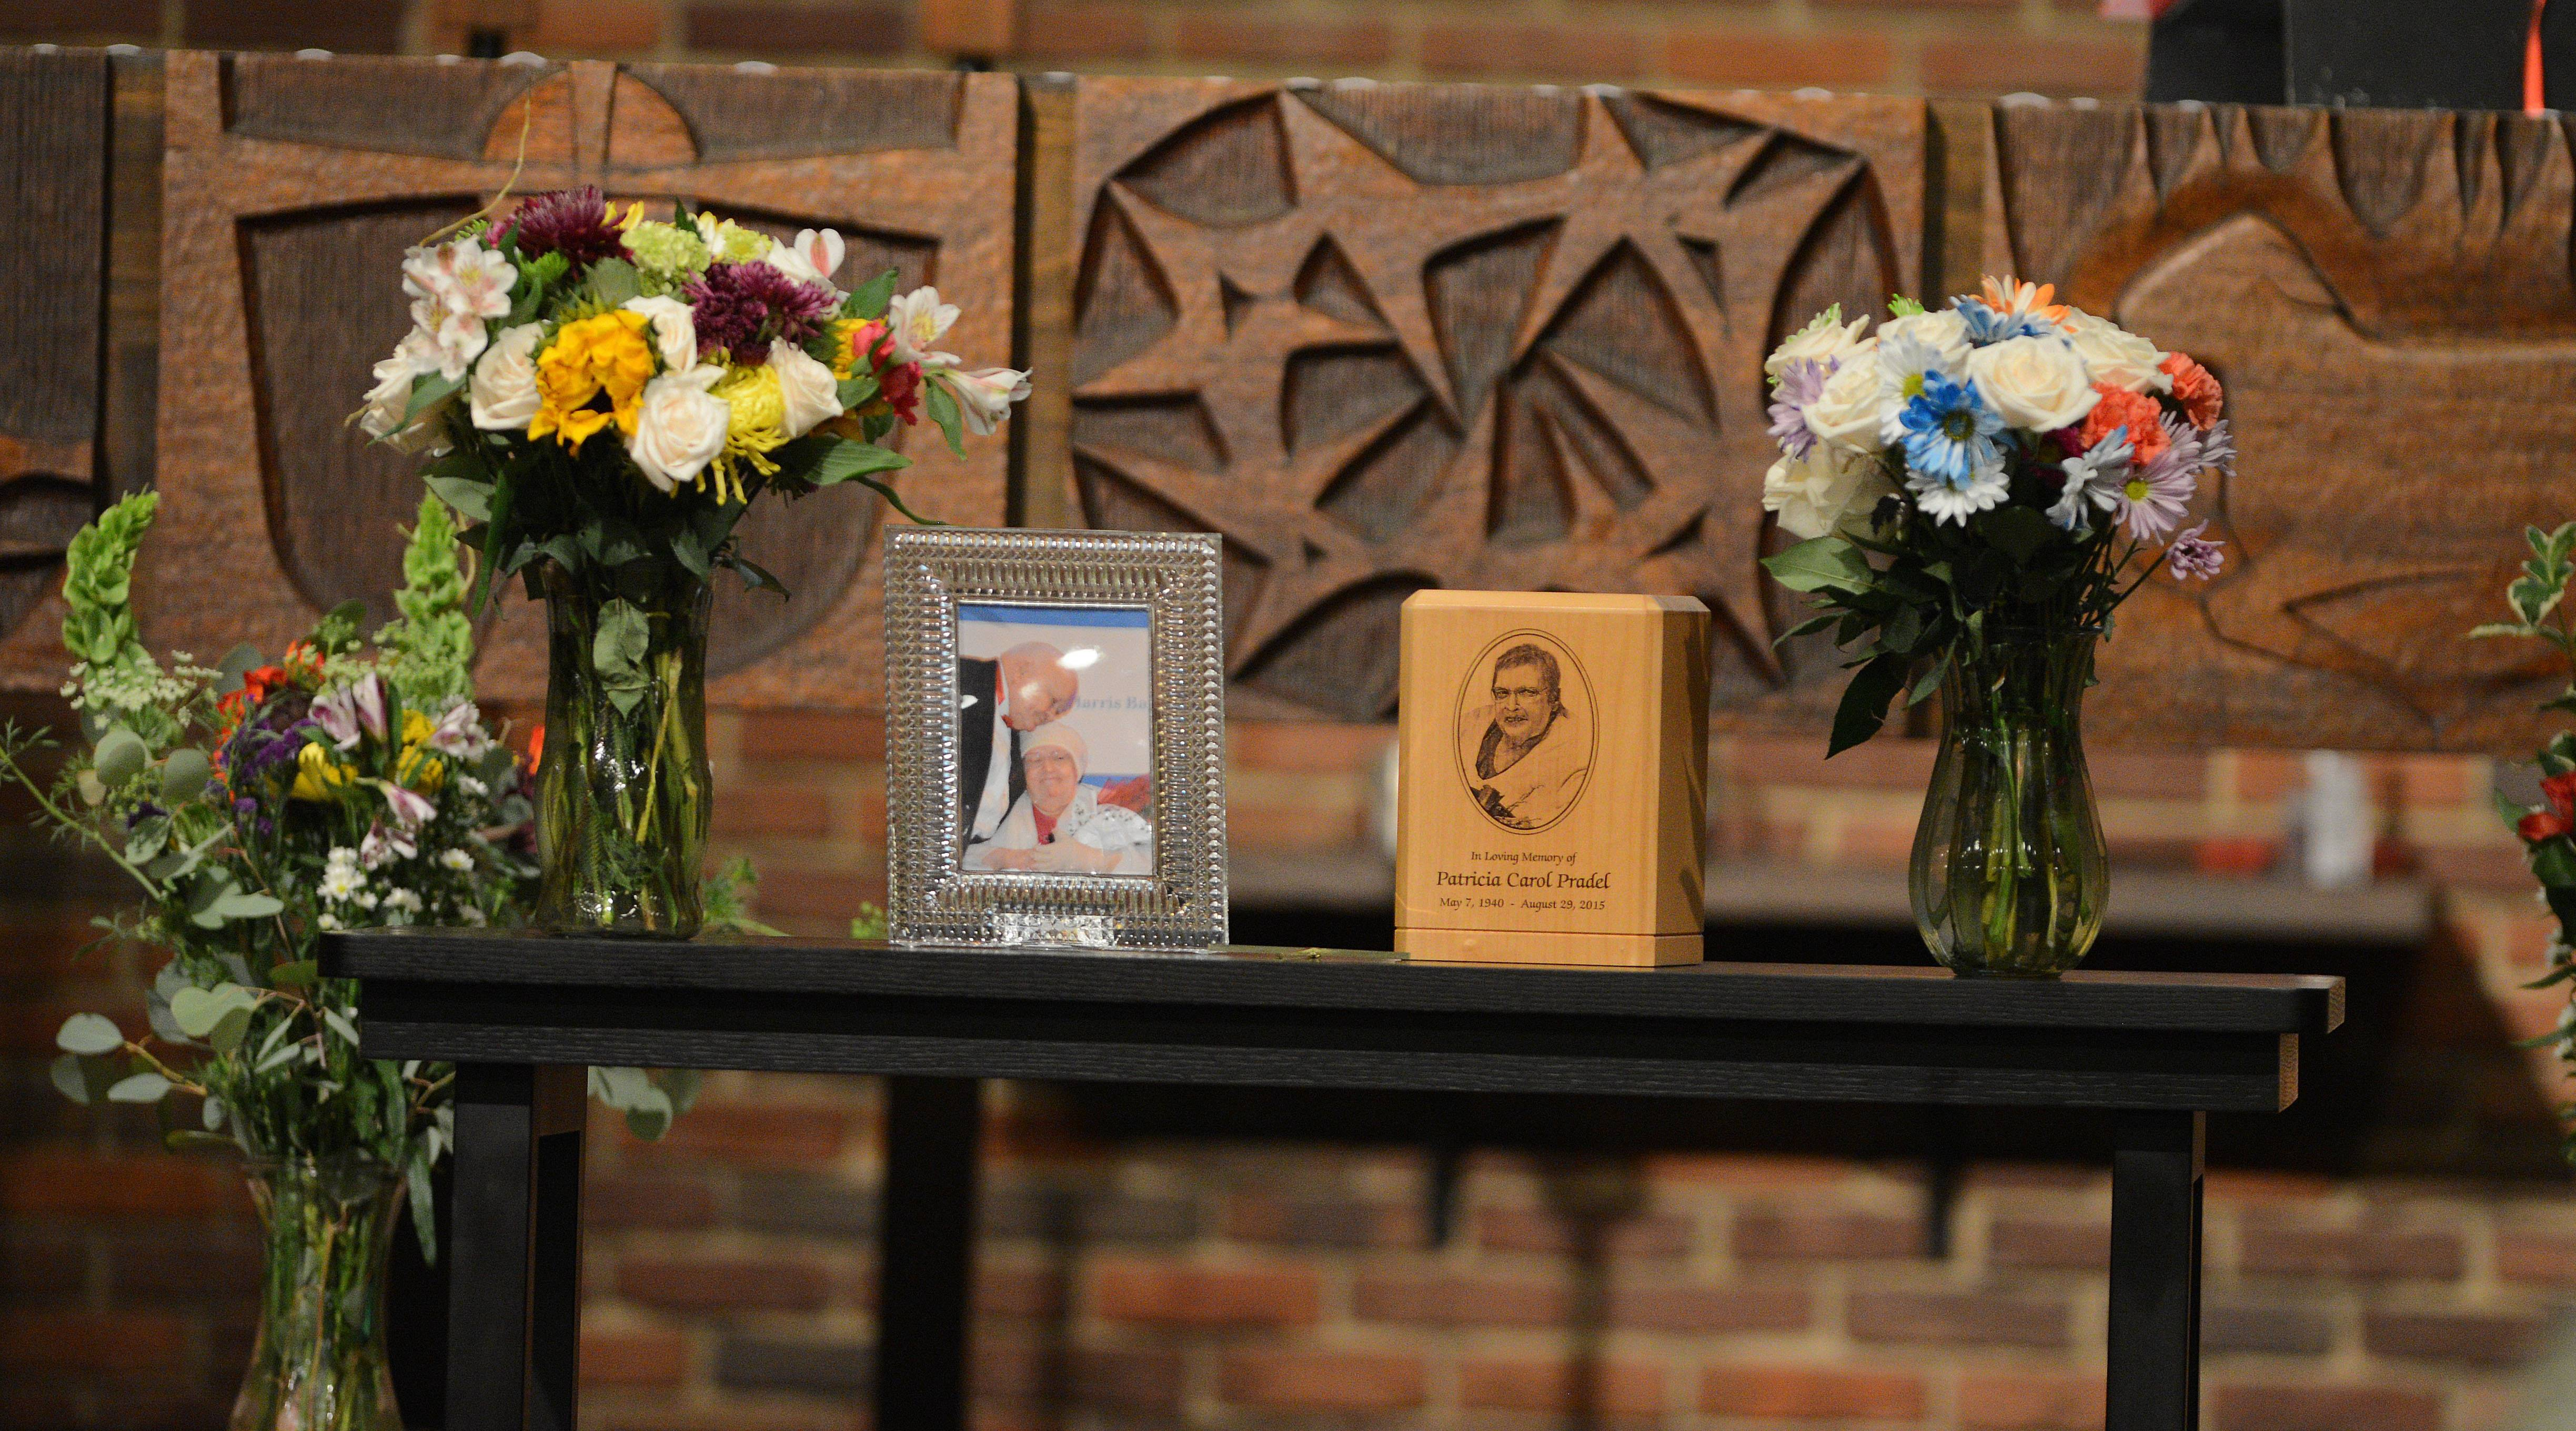 Family members of Patricia Carol Pradel, wife of longtime Naperville Mayor George Pradel, hosted a visitation and celebration of life ceremony Thursday at Our Saviour's Lutheran Church.